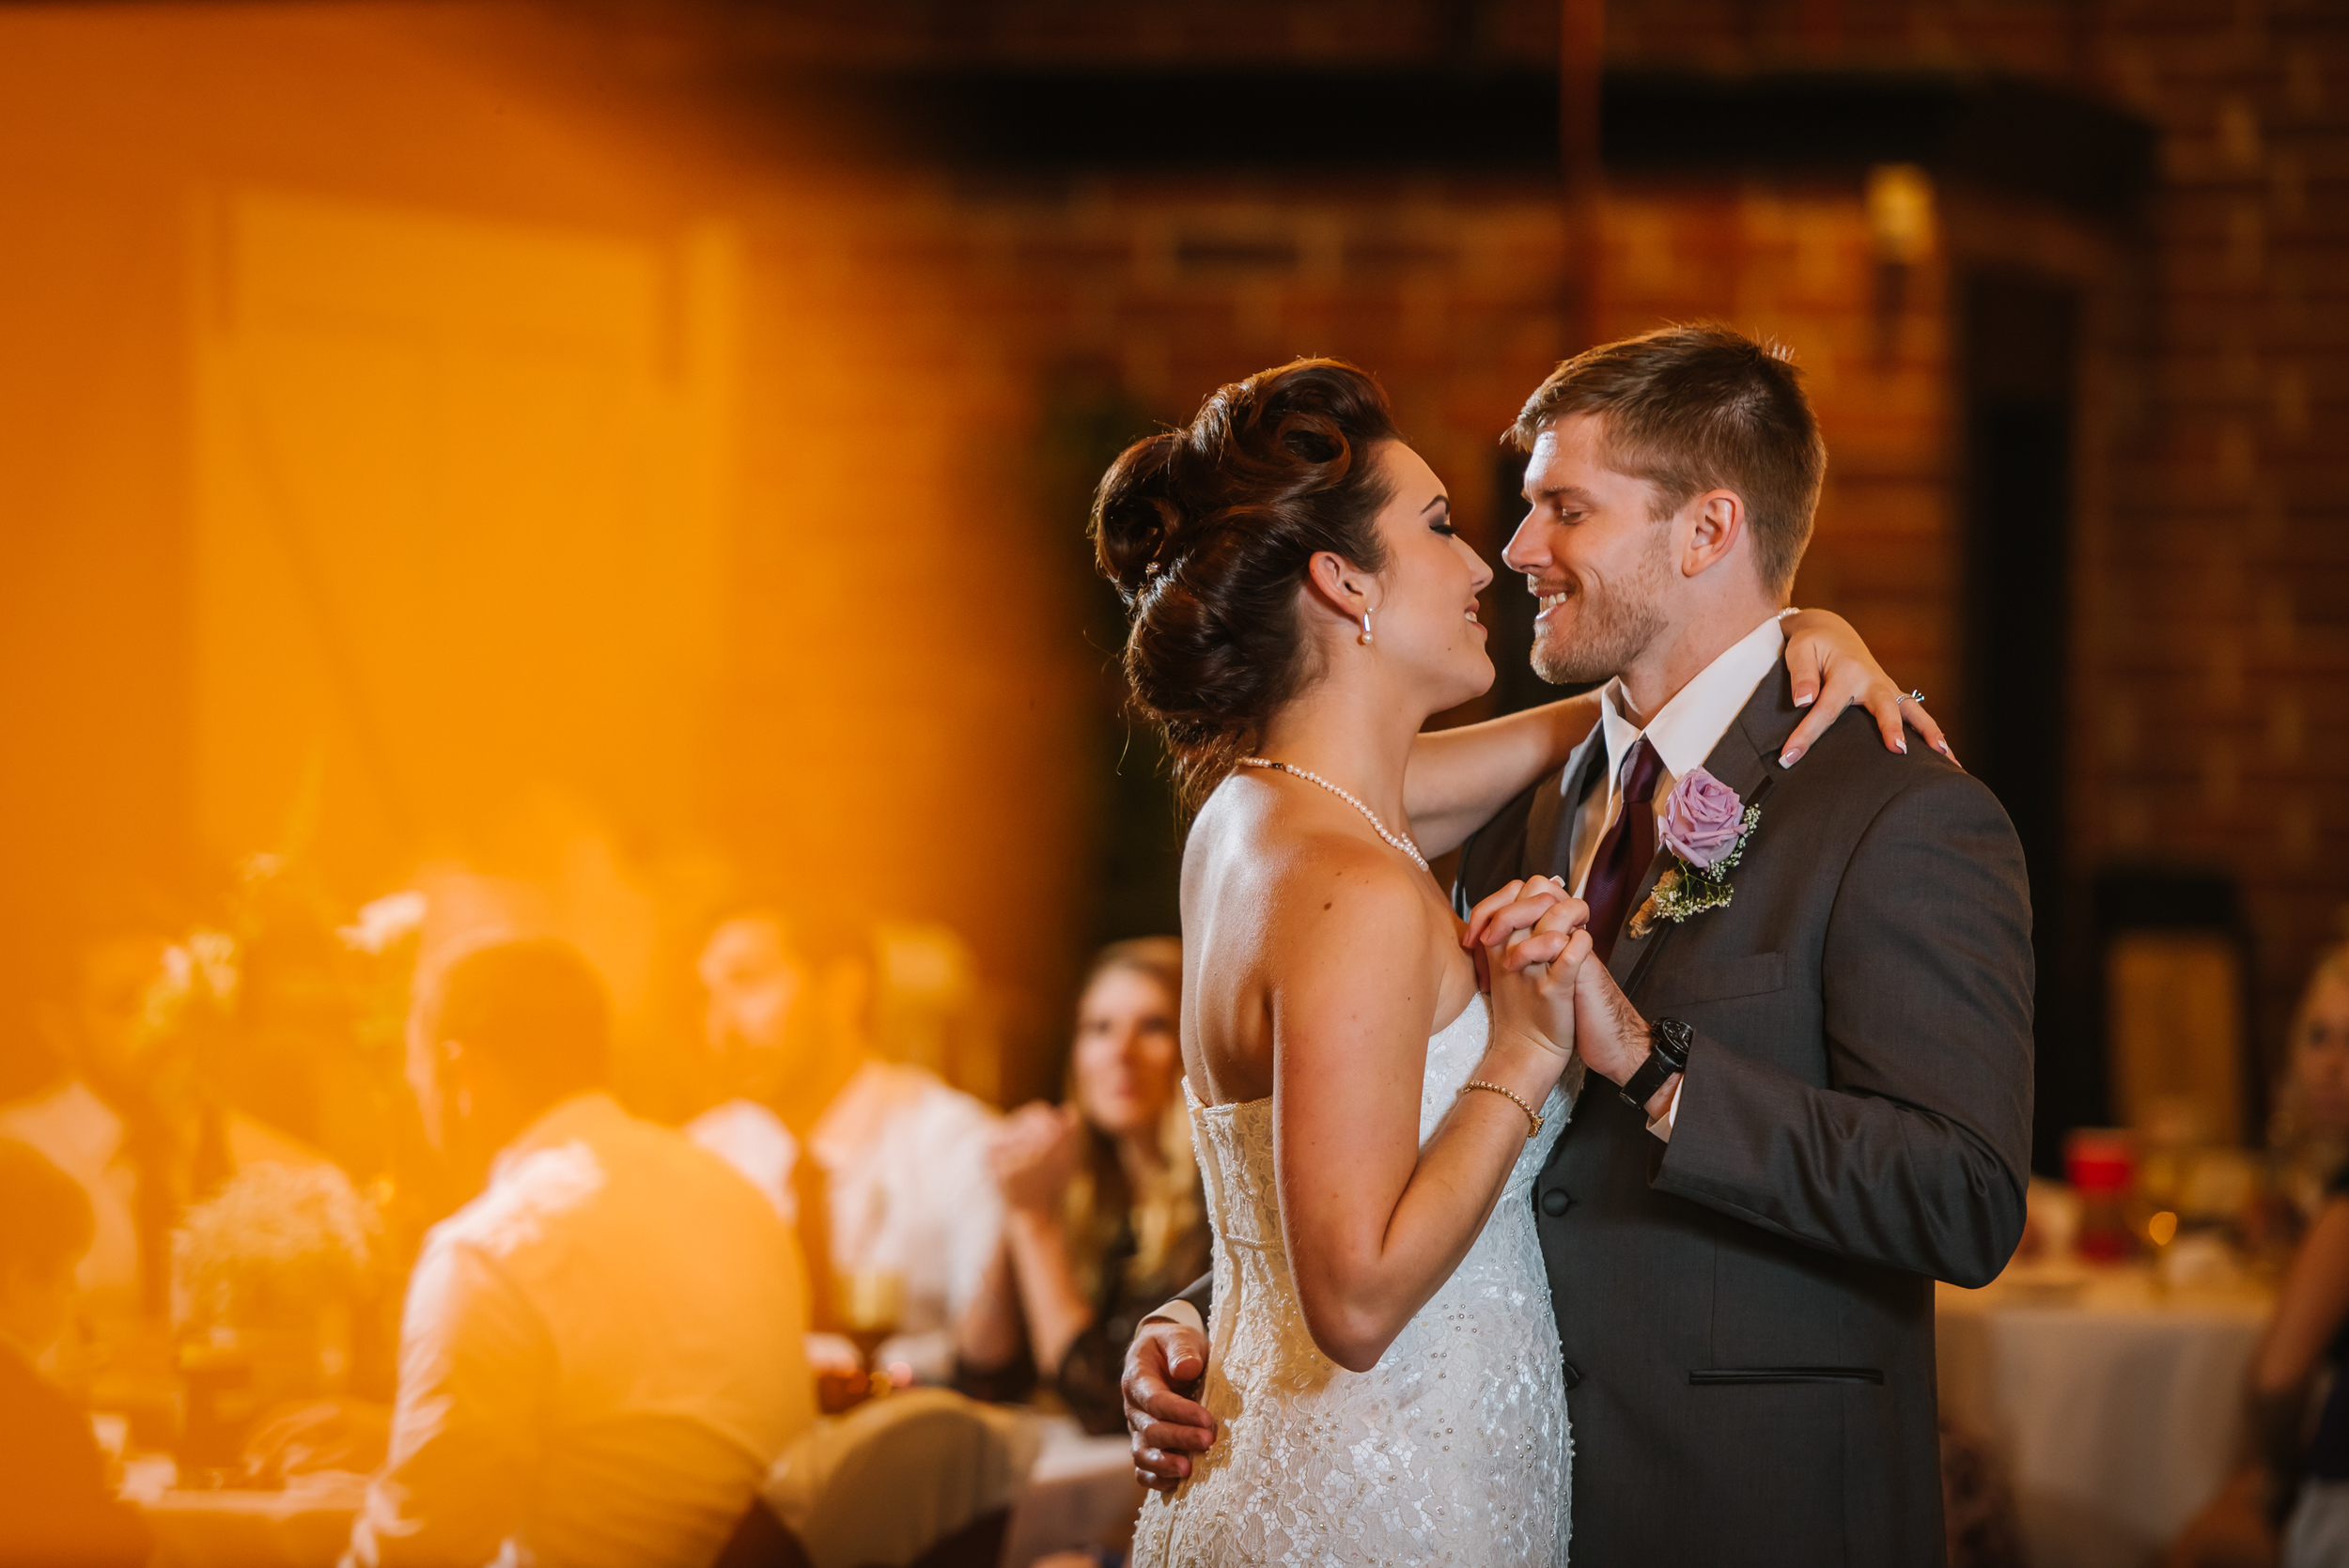 Ahhh!! My long time friend got married!! Jenna and Nick had an amazing day and this first dance photo is one of may all time favs.